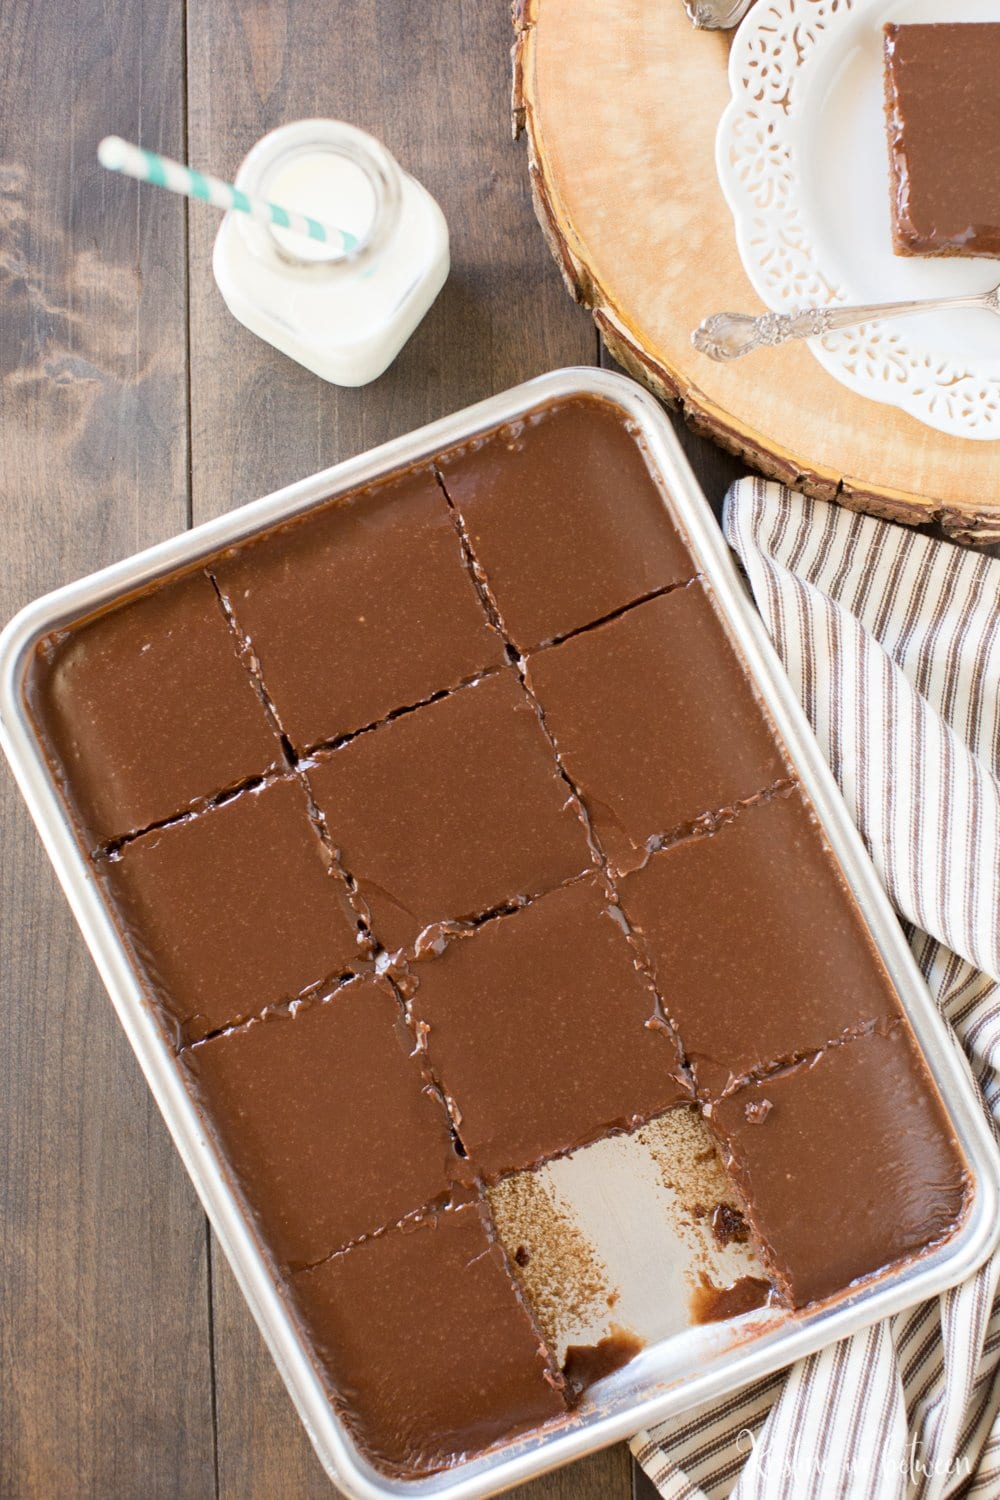 Is there anything more delightful than a soft, warm, chocolatey Texas sheet cake? No, I don't think so either! And even better, this small-batch recipe makes only a quarter of a sheet cake!